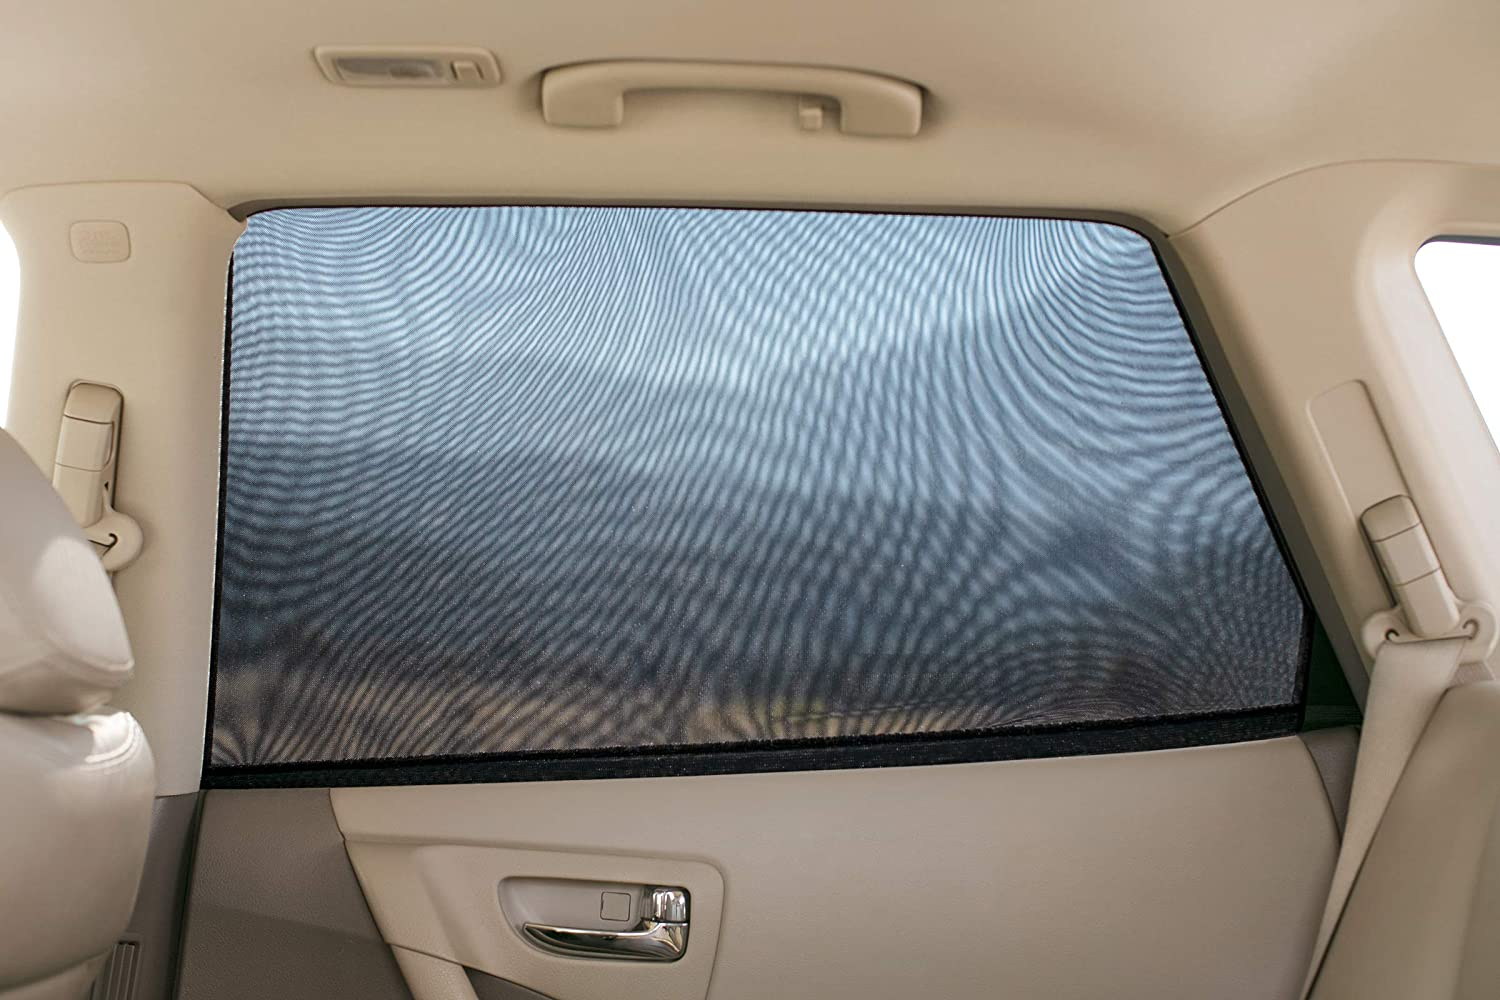 Elasticized Universal Mesh Car Shades Fit Most Vehicles Magnelex Sock Style Car Window Shades for Baby 2 Pack Block Sun Rays to Keep Passengers Pets and Car Interior Cool and Comfortable